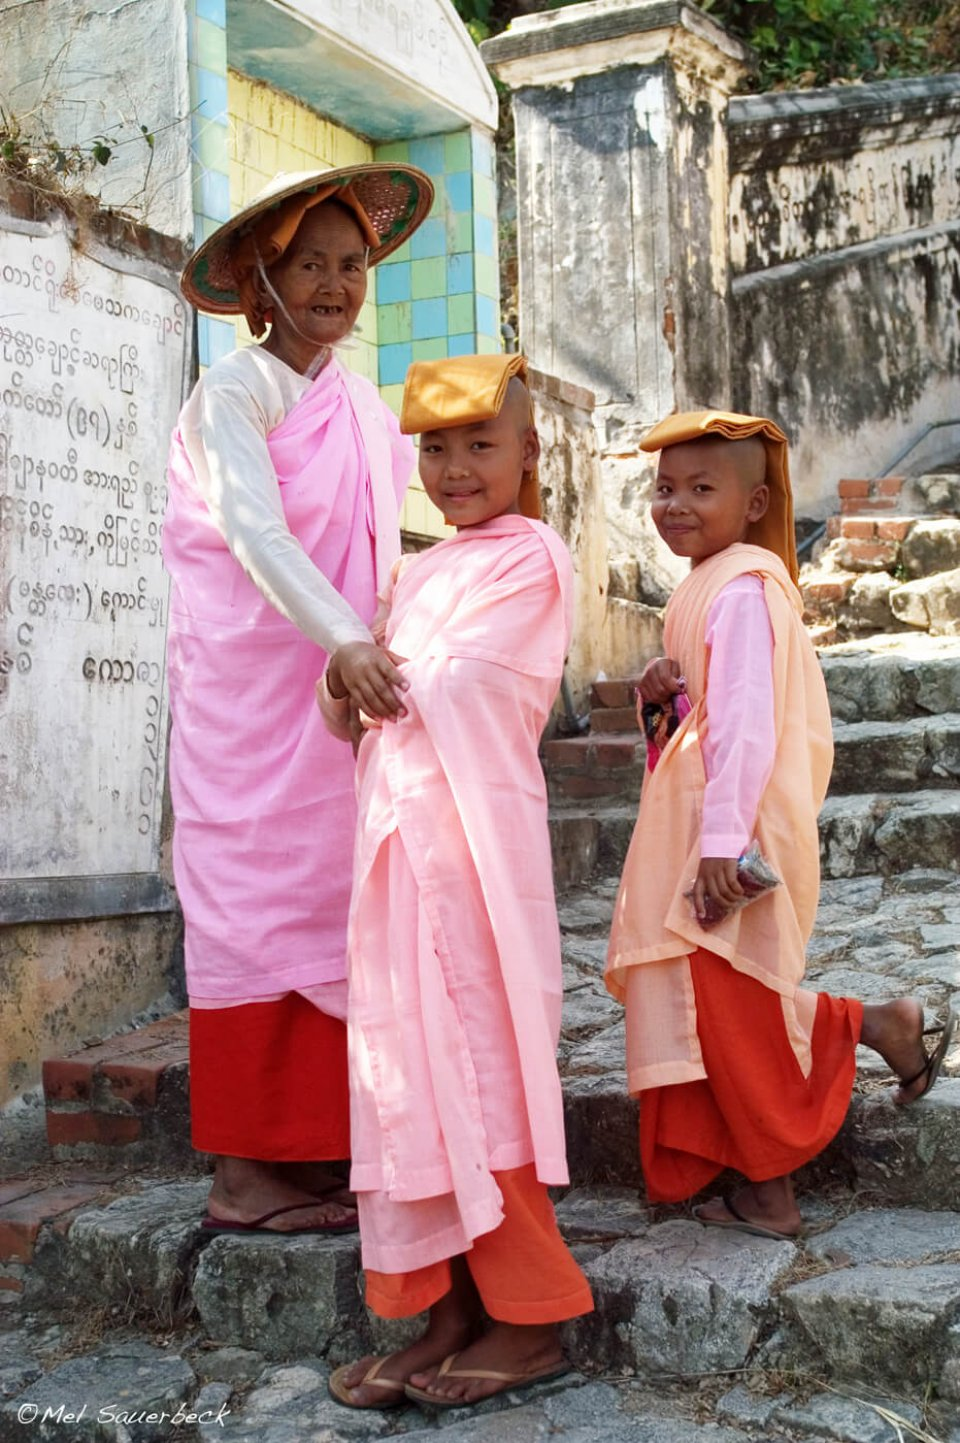 Lady monks on stairs, Myanmar, Burma